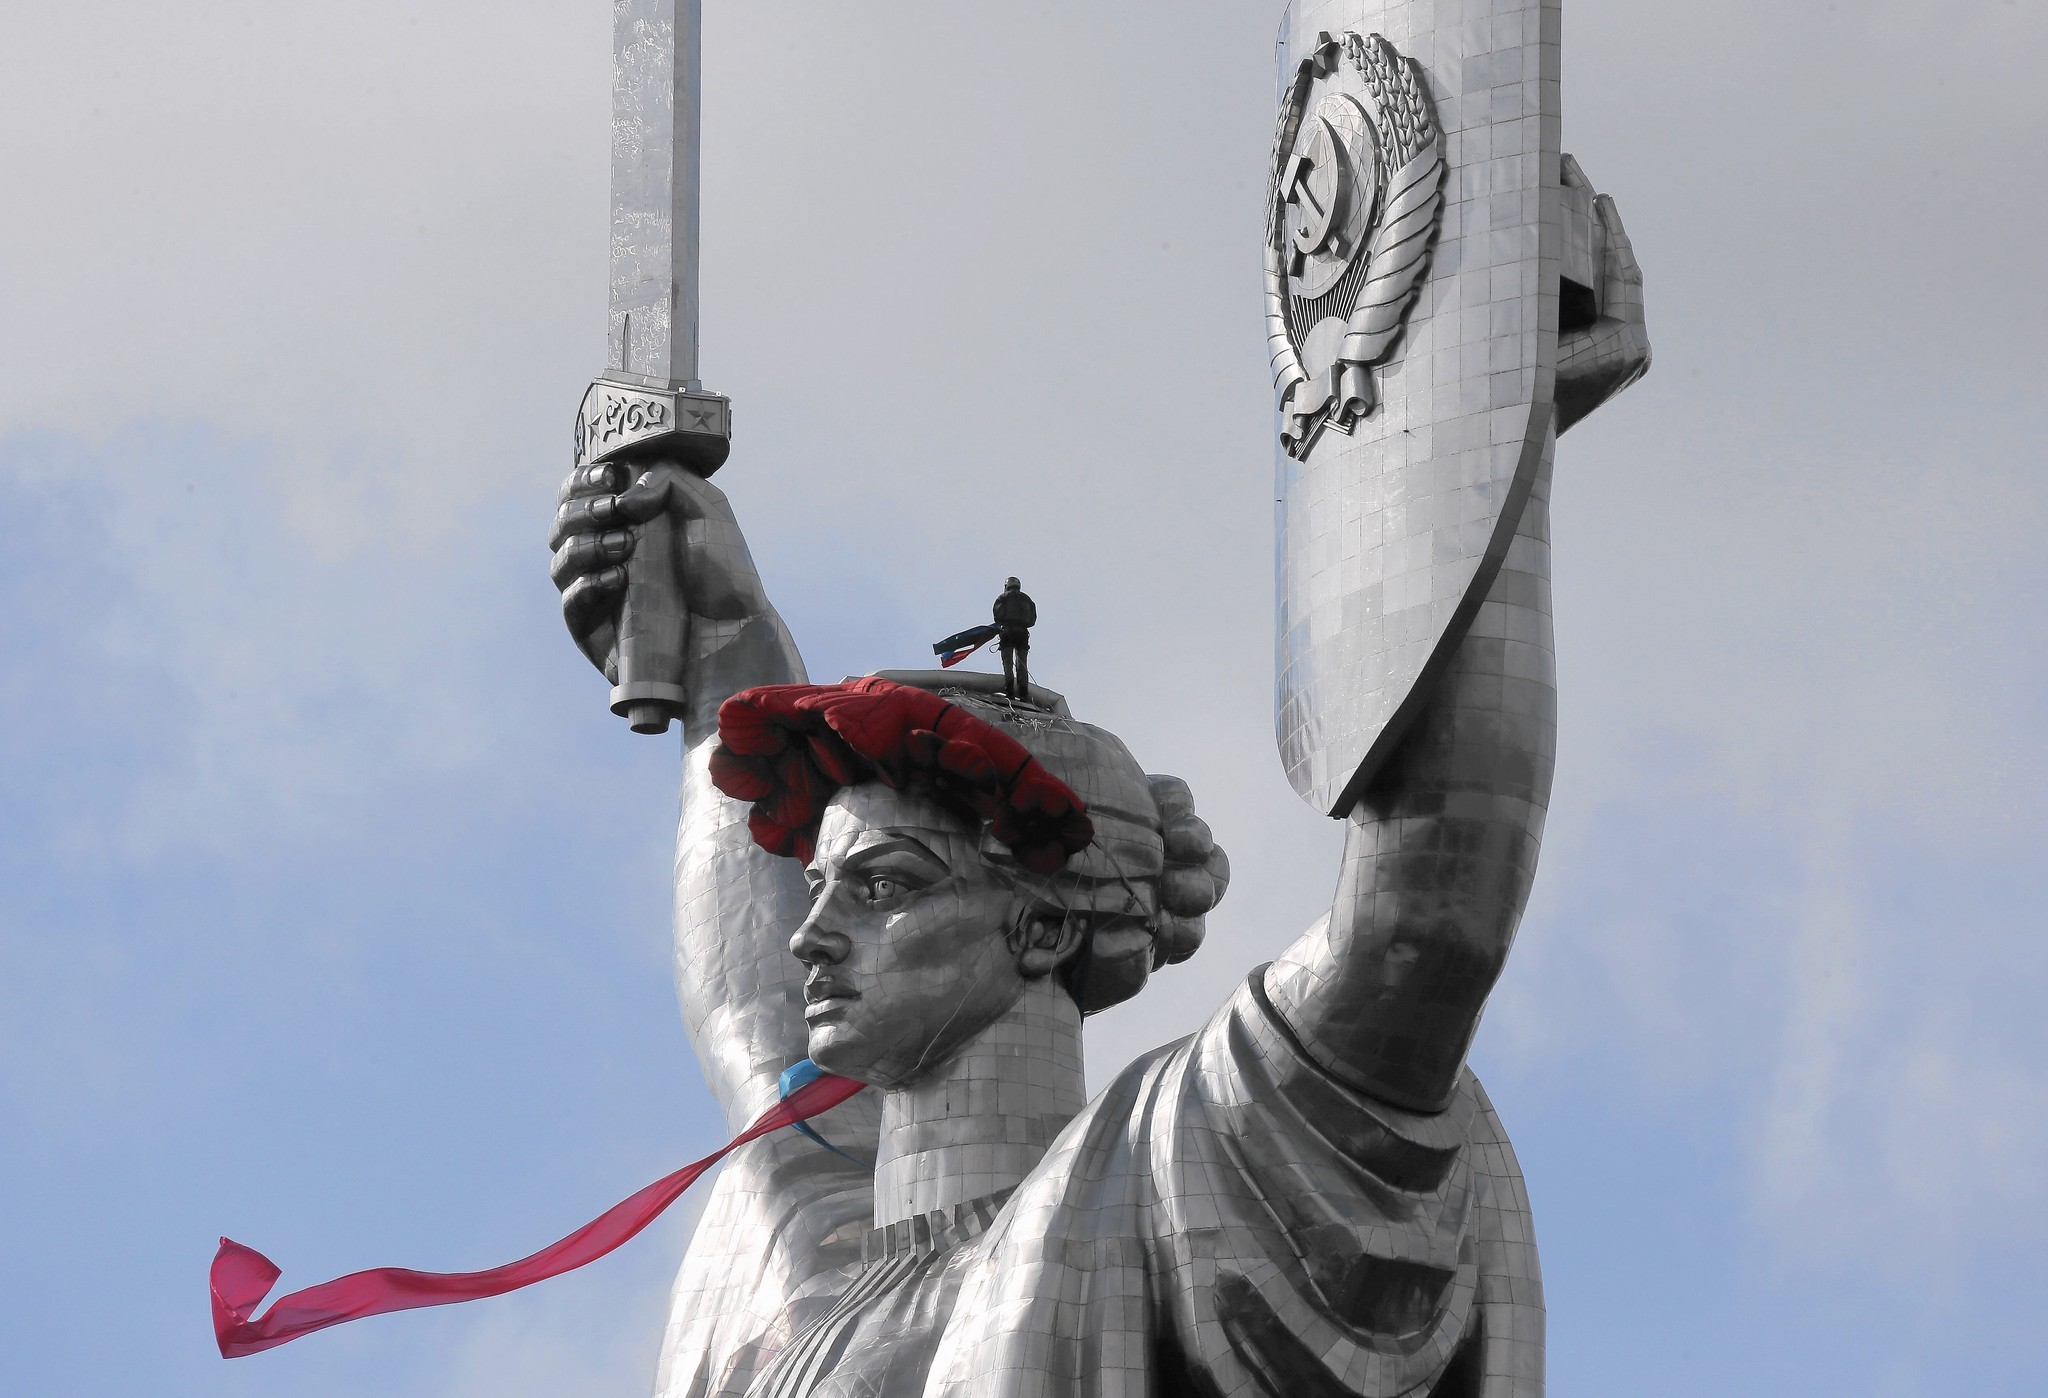 Ukraine's plans to discard Soviet symbols are seen as divisive, ill-timed